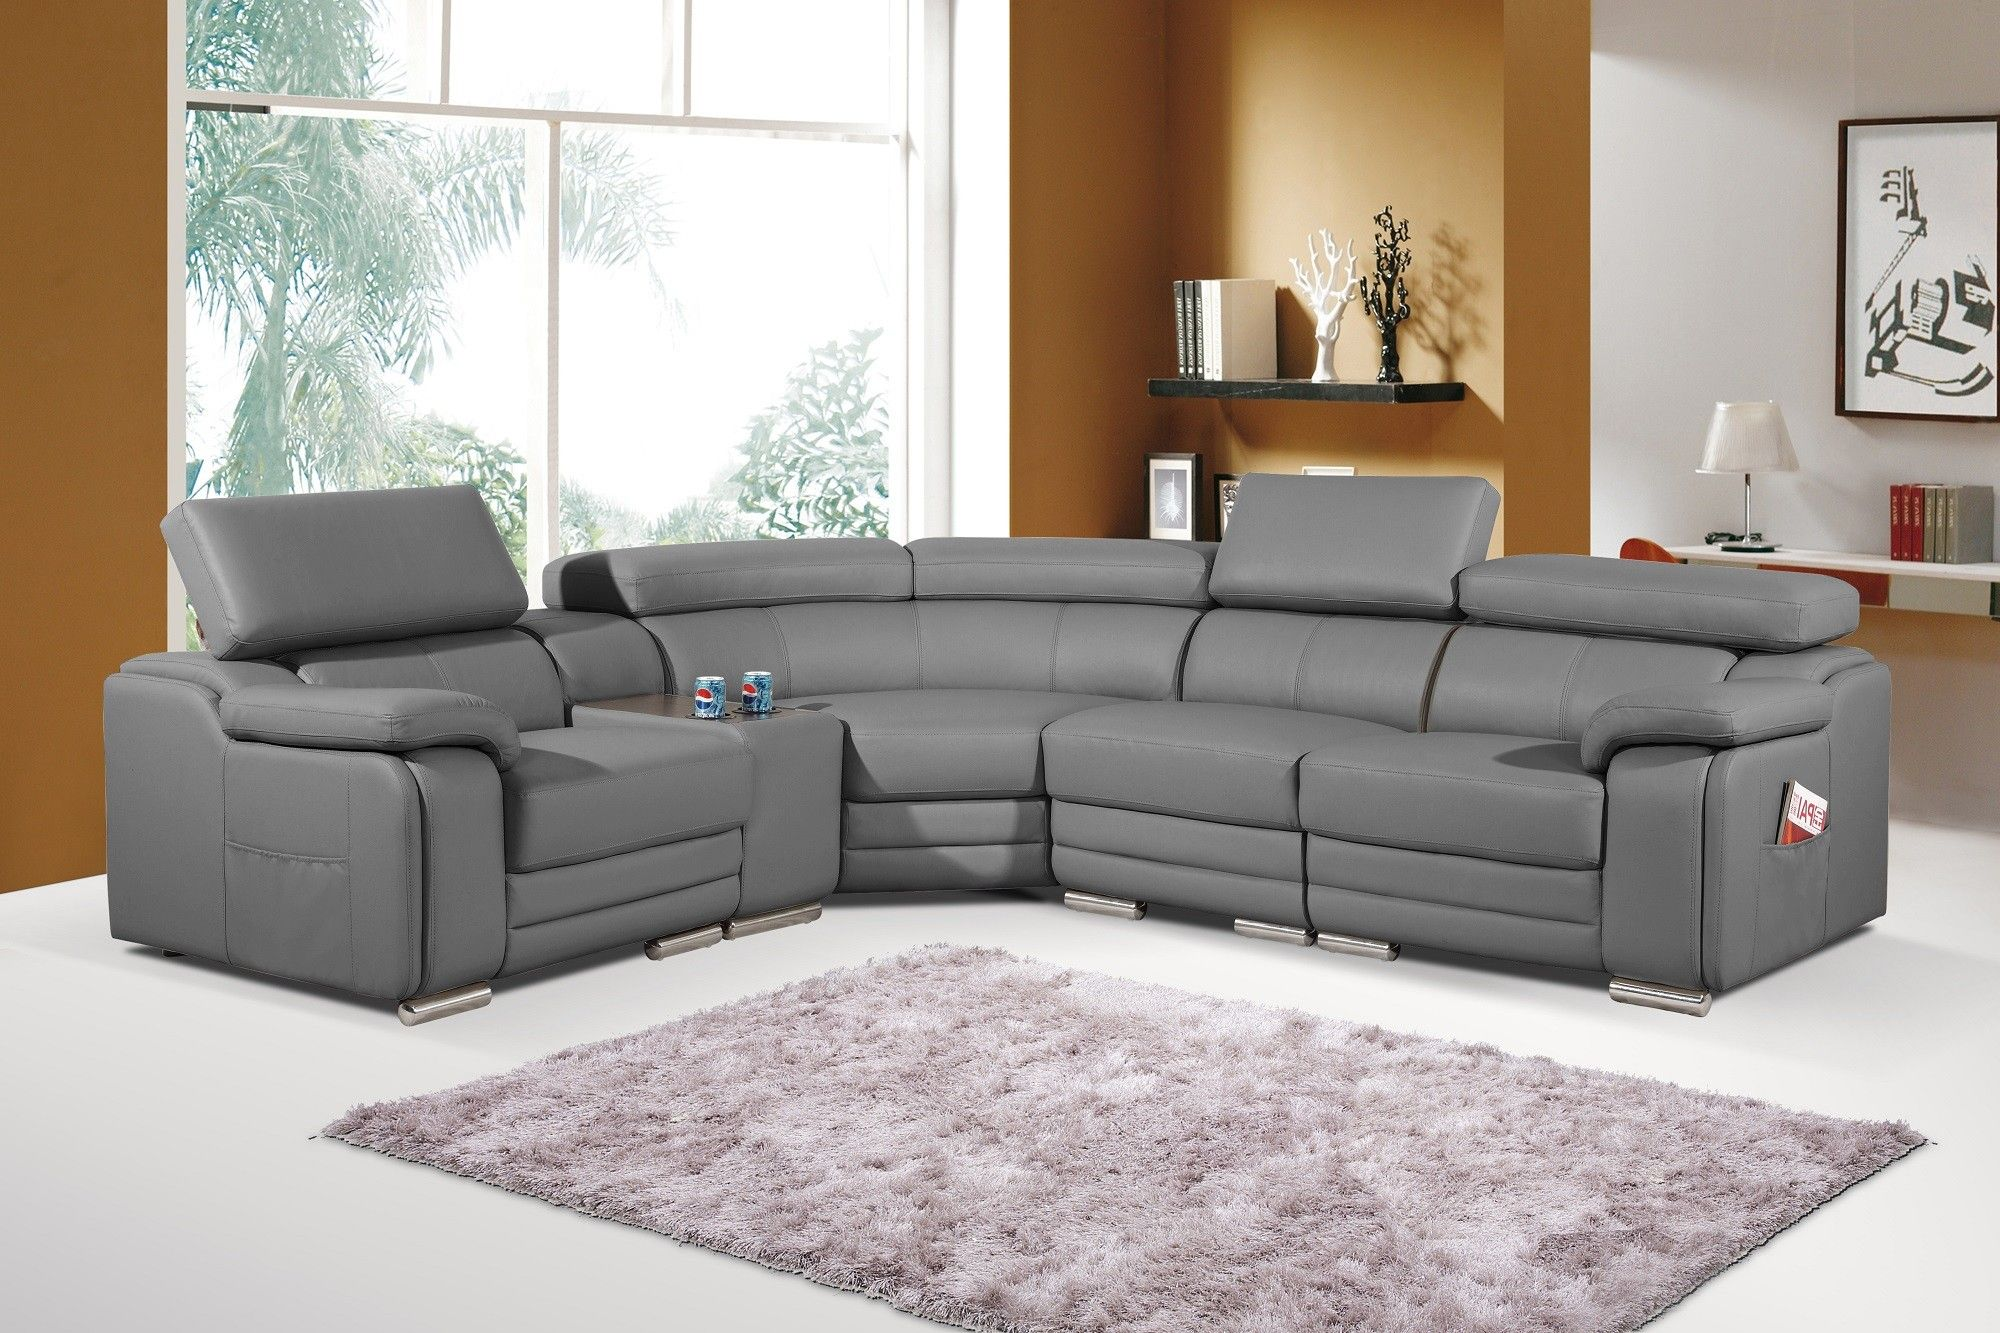 Dakota Grey Bonded Leather Corner Sofa Left Hand Leather Corner Sofa Grey Leather Corner Sofa Corner Sofa